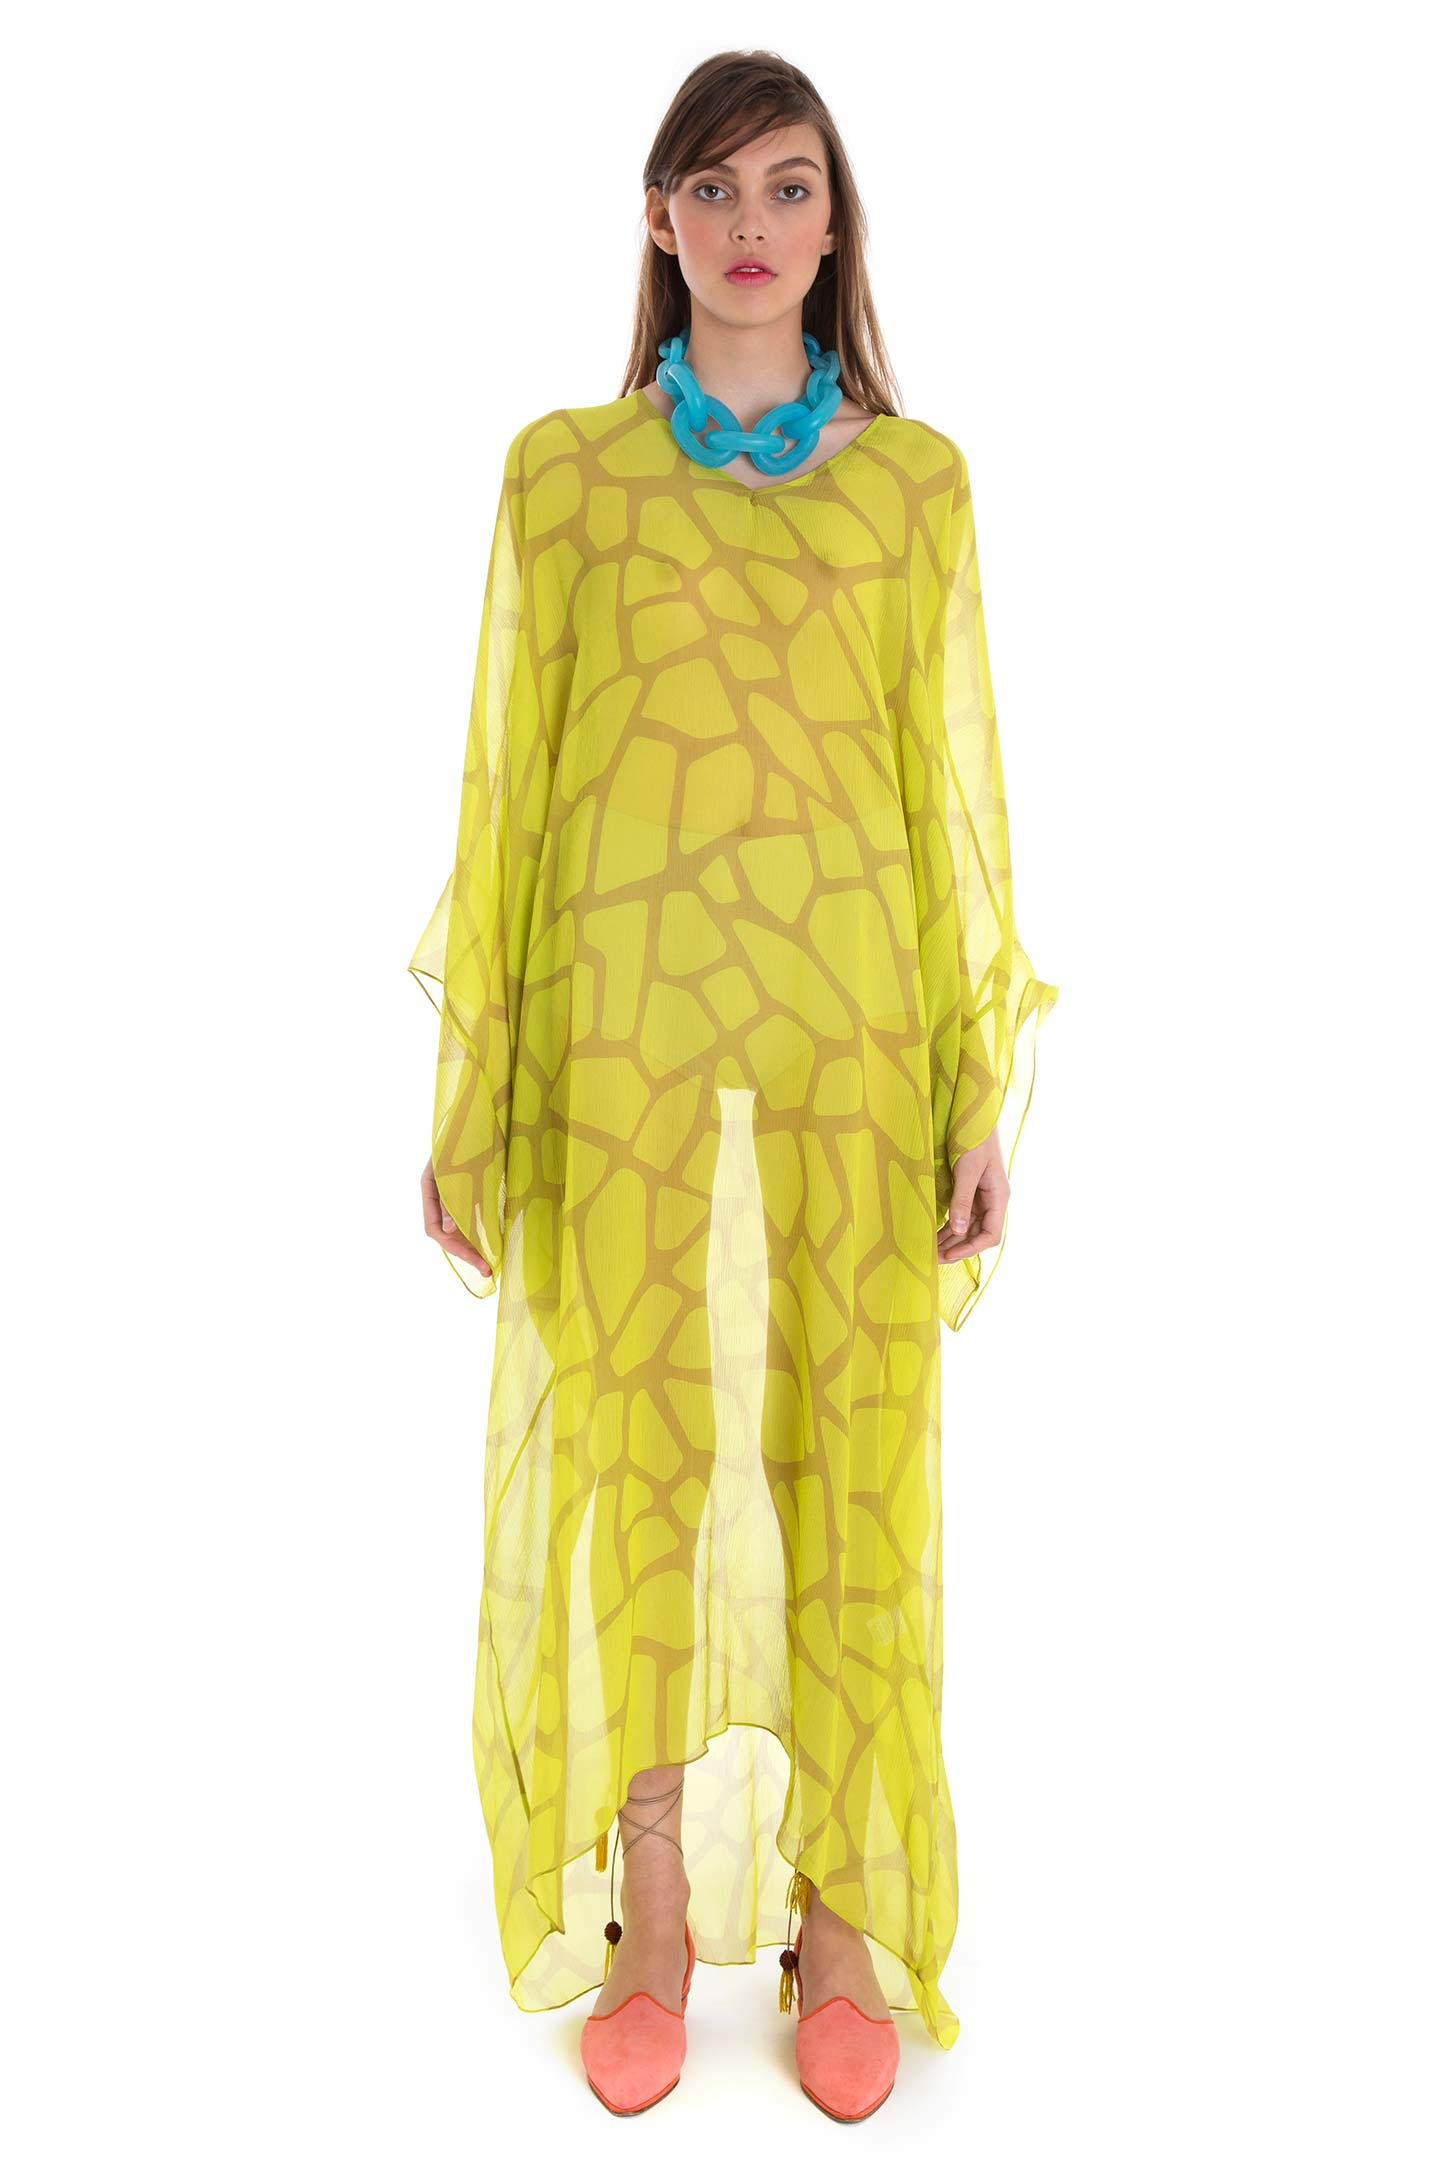 YELLOW GIRAFFE CAFTAN